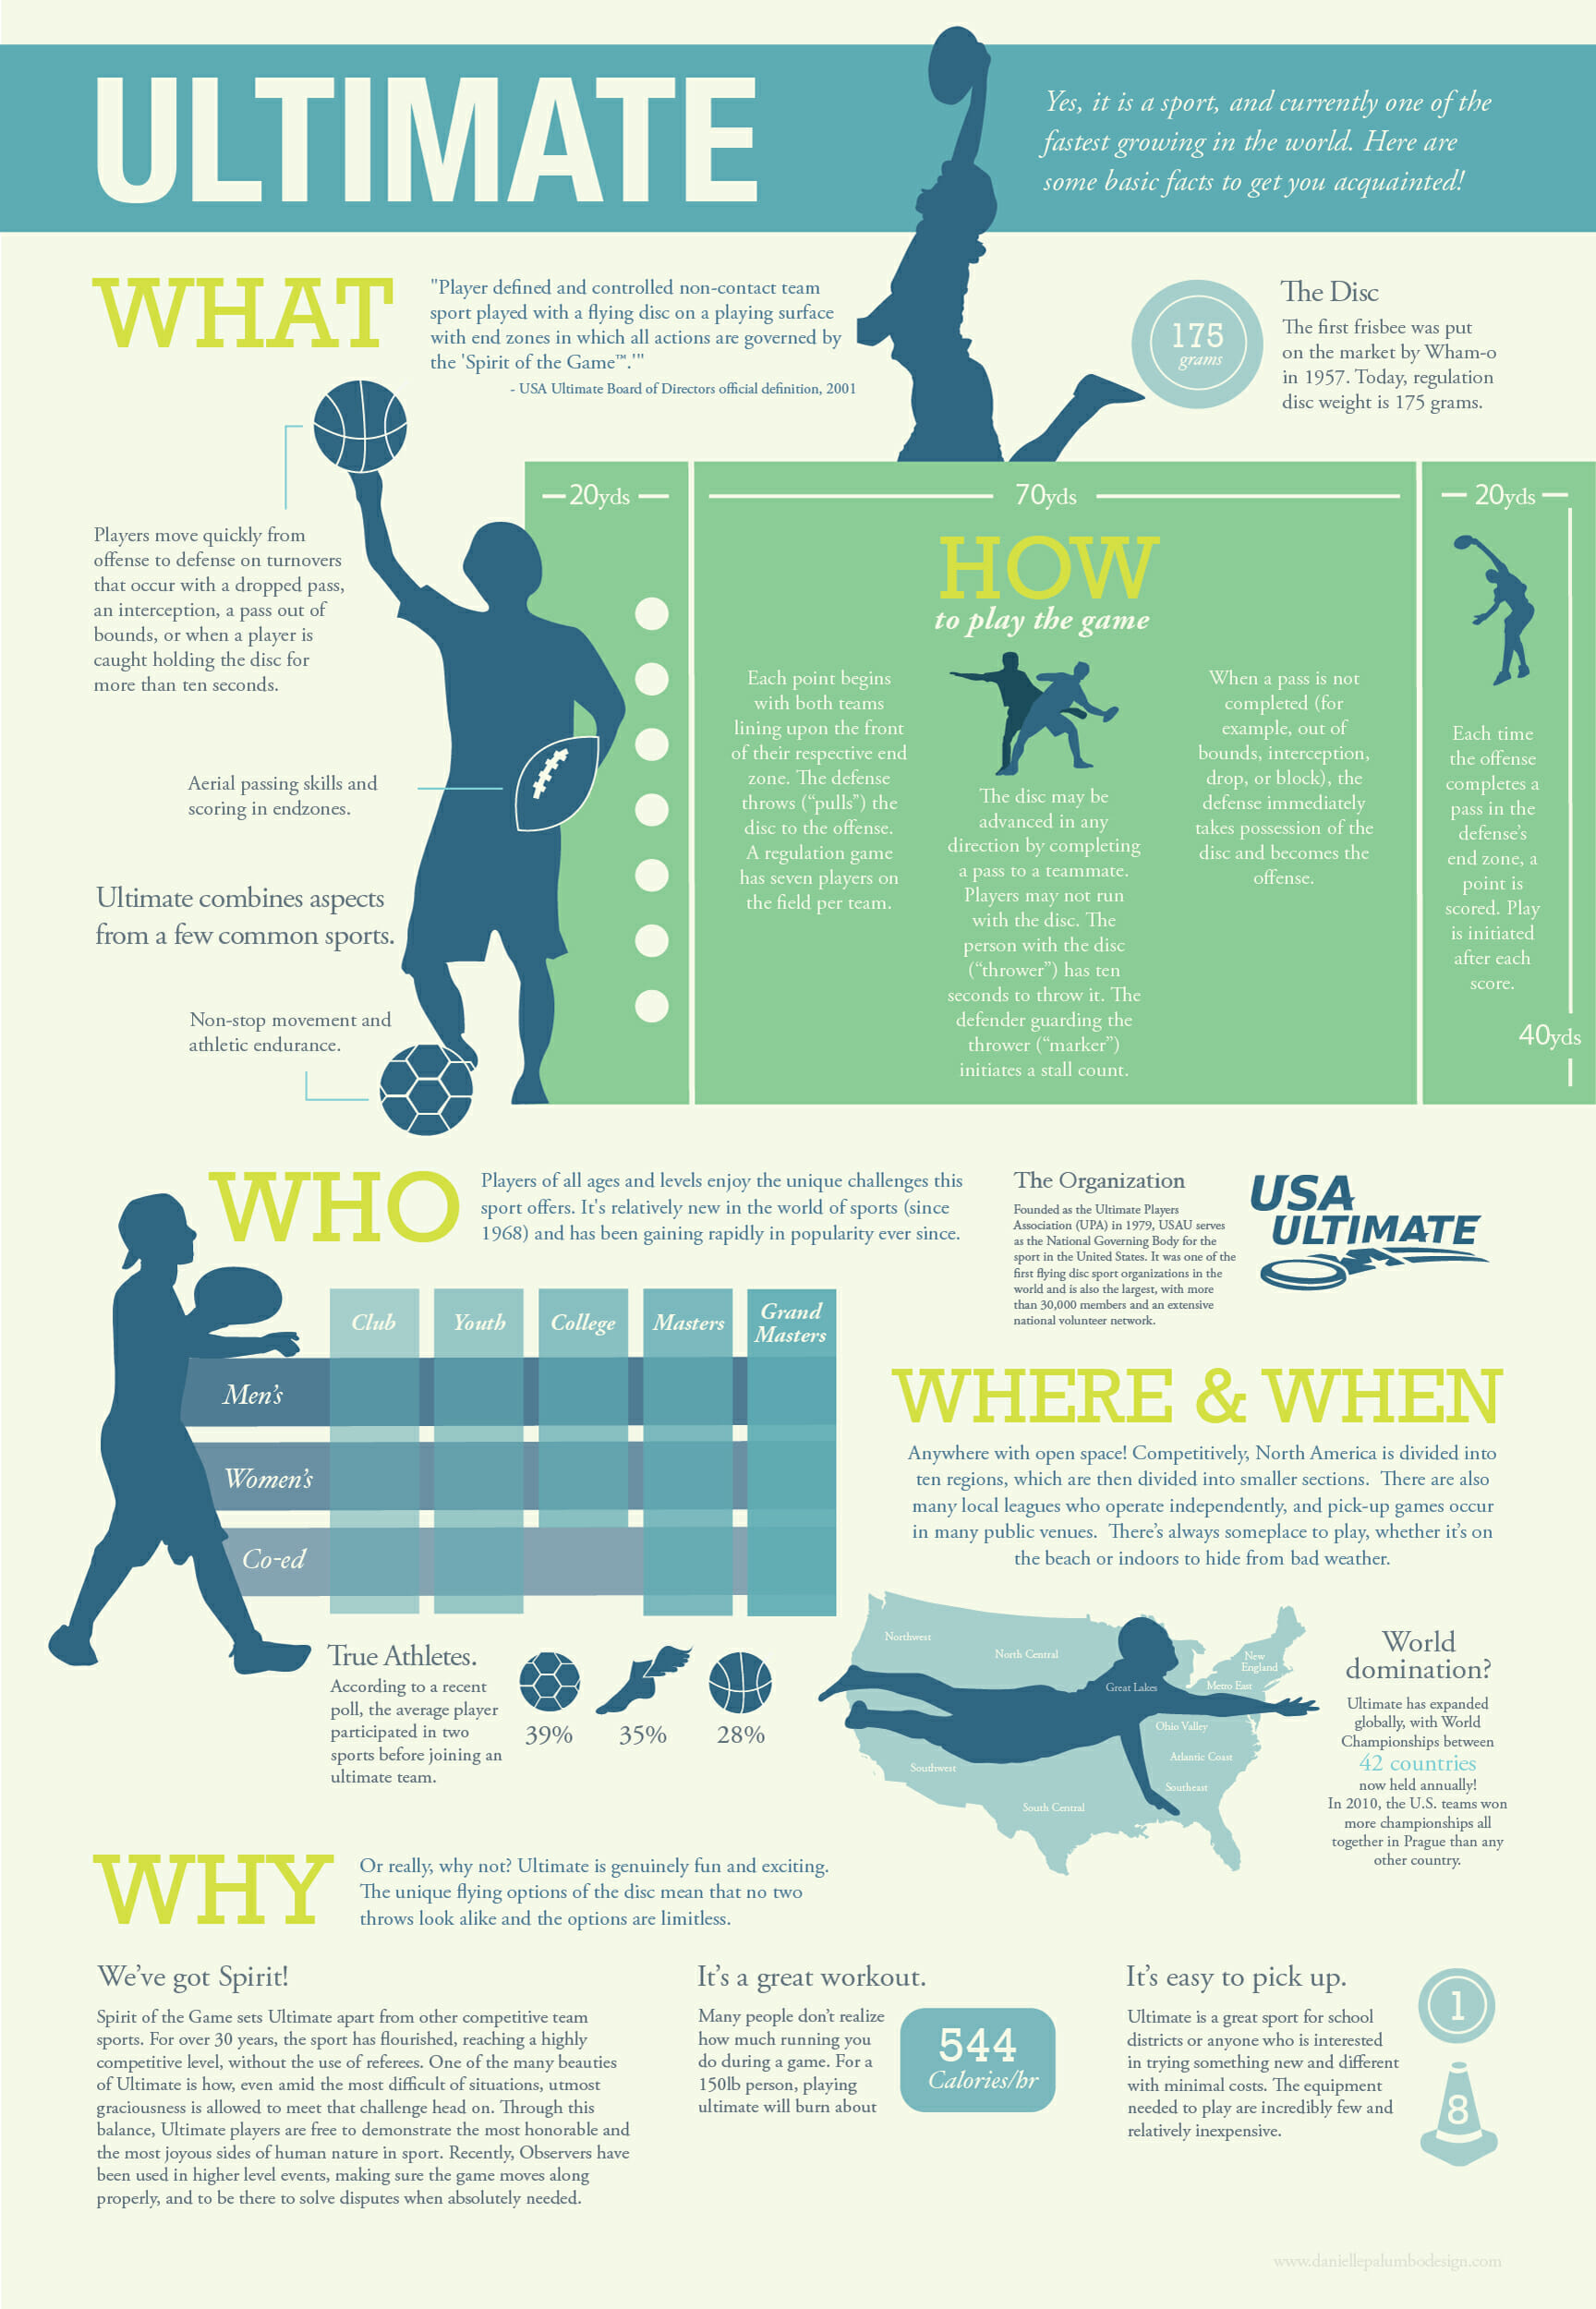 Infographic about Ultimate by Danielle Palumbo.